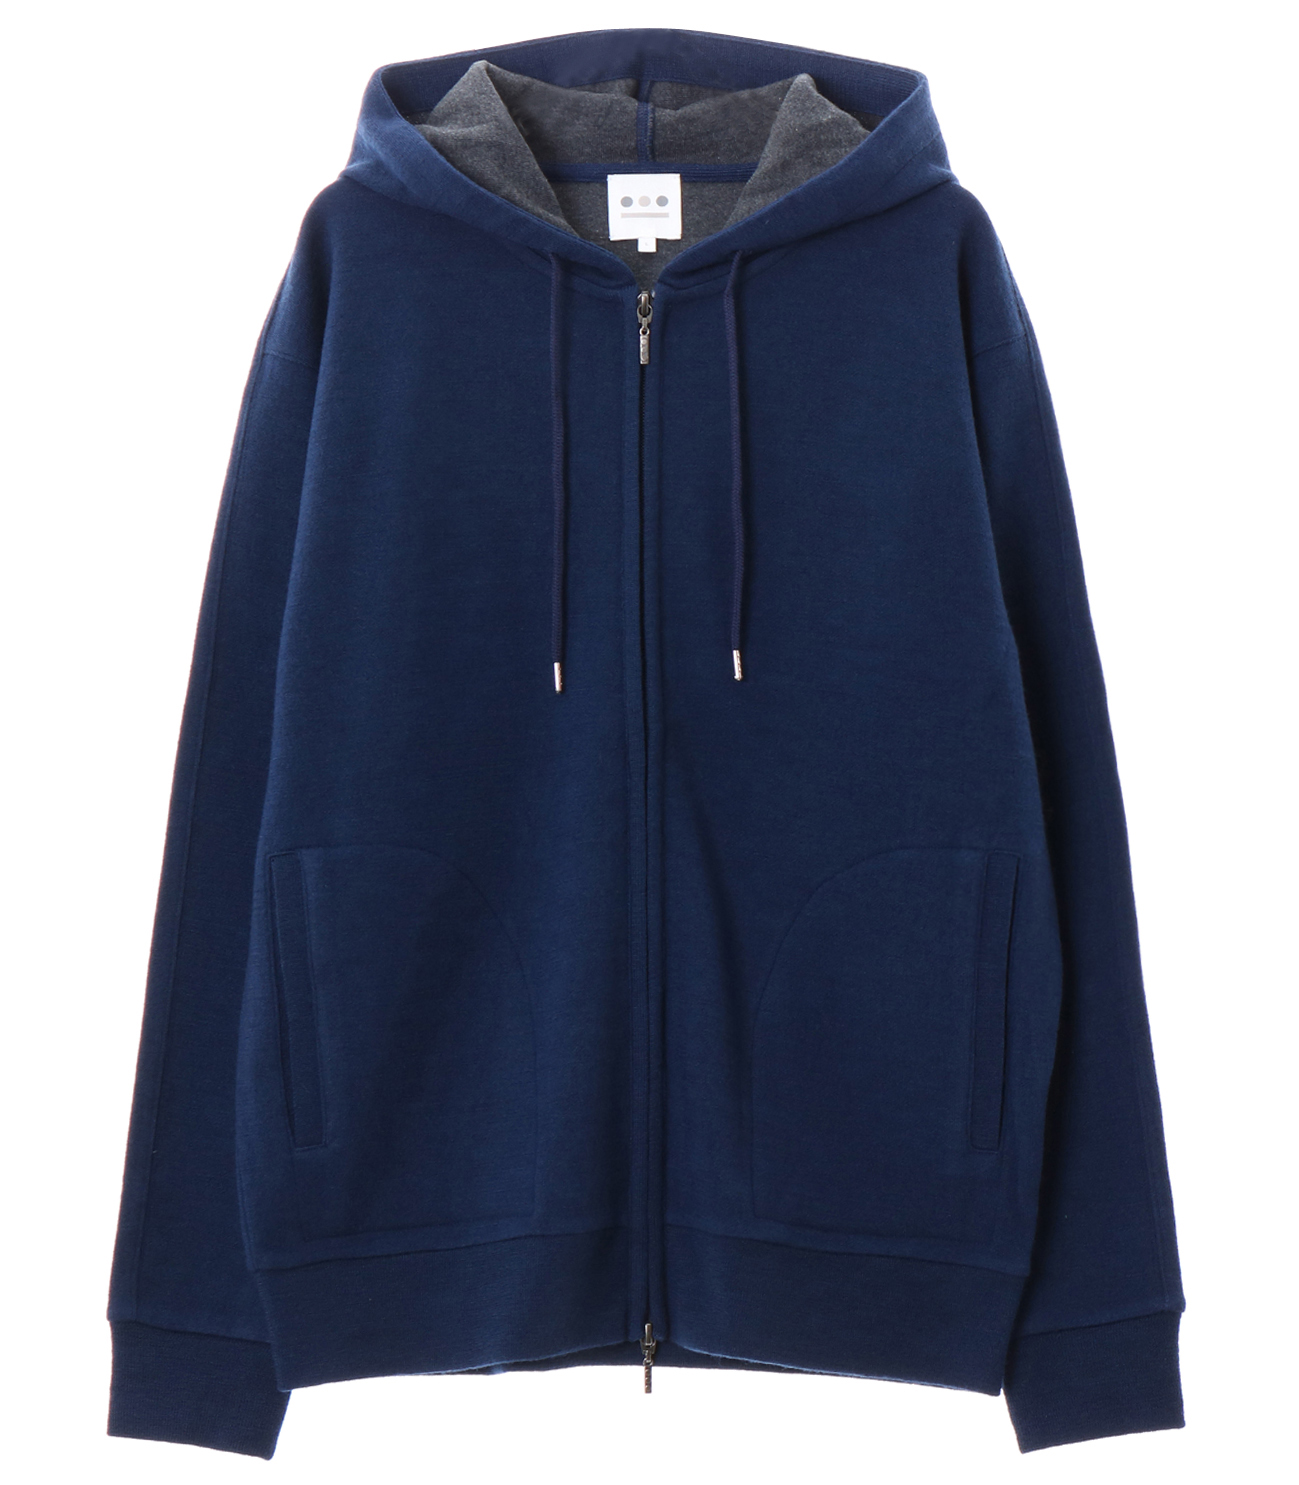 double face knit zip up hd 詳細画像 navy 1